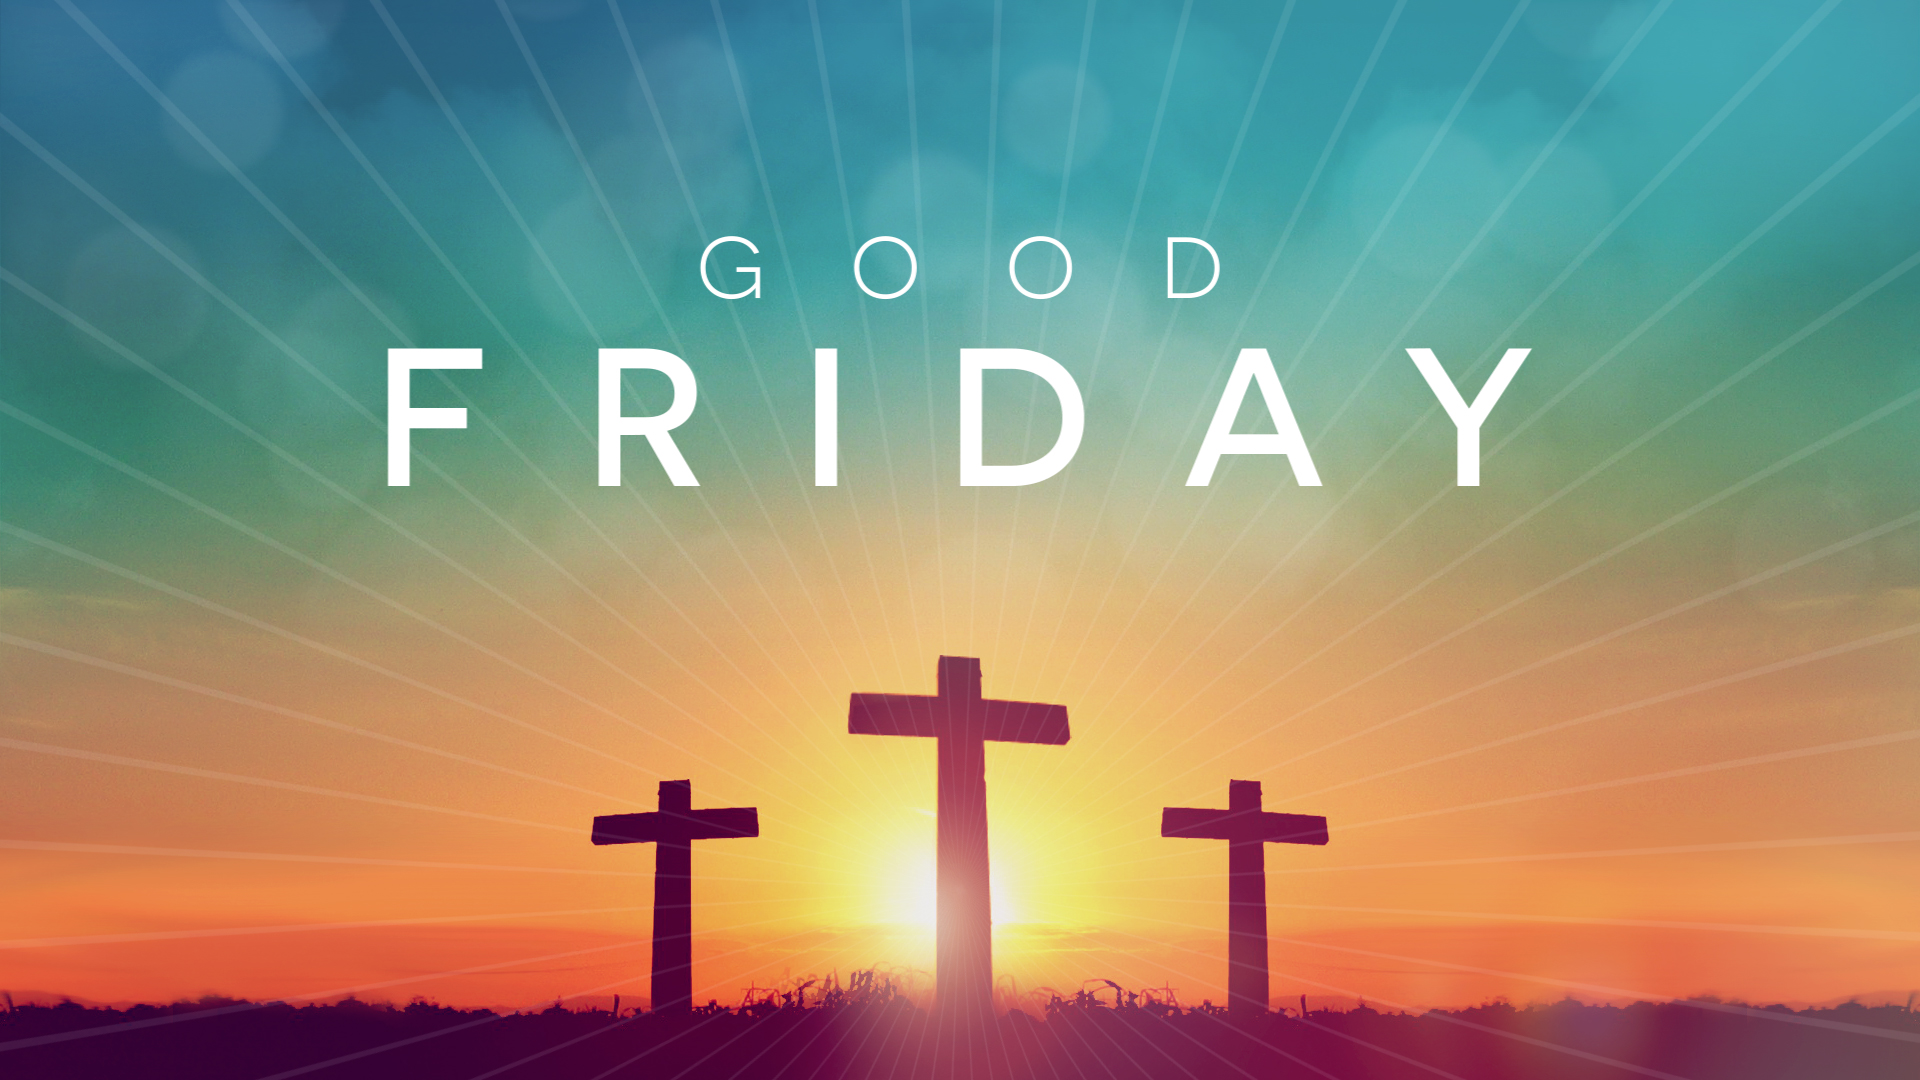 Good friday quotes wishes images sayings greetings 2017 techavy good friday quotes kristyandbryce Images